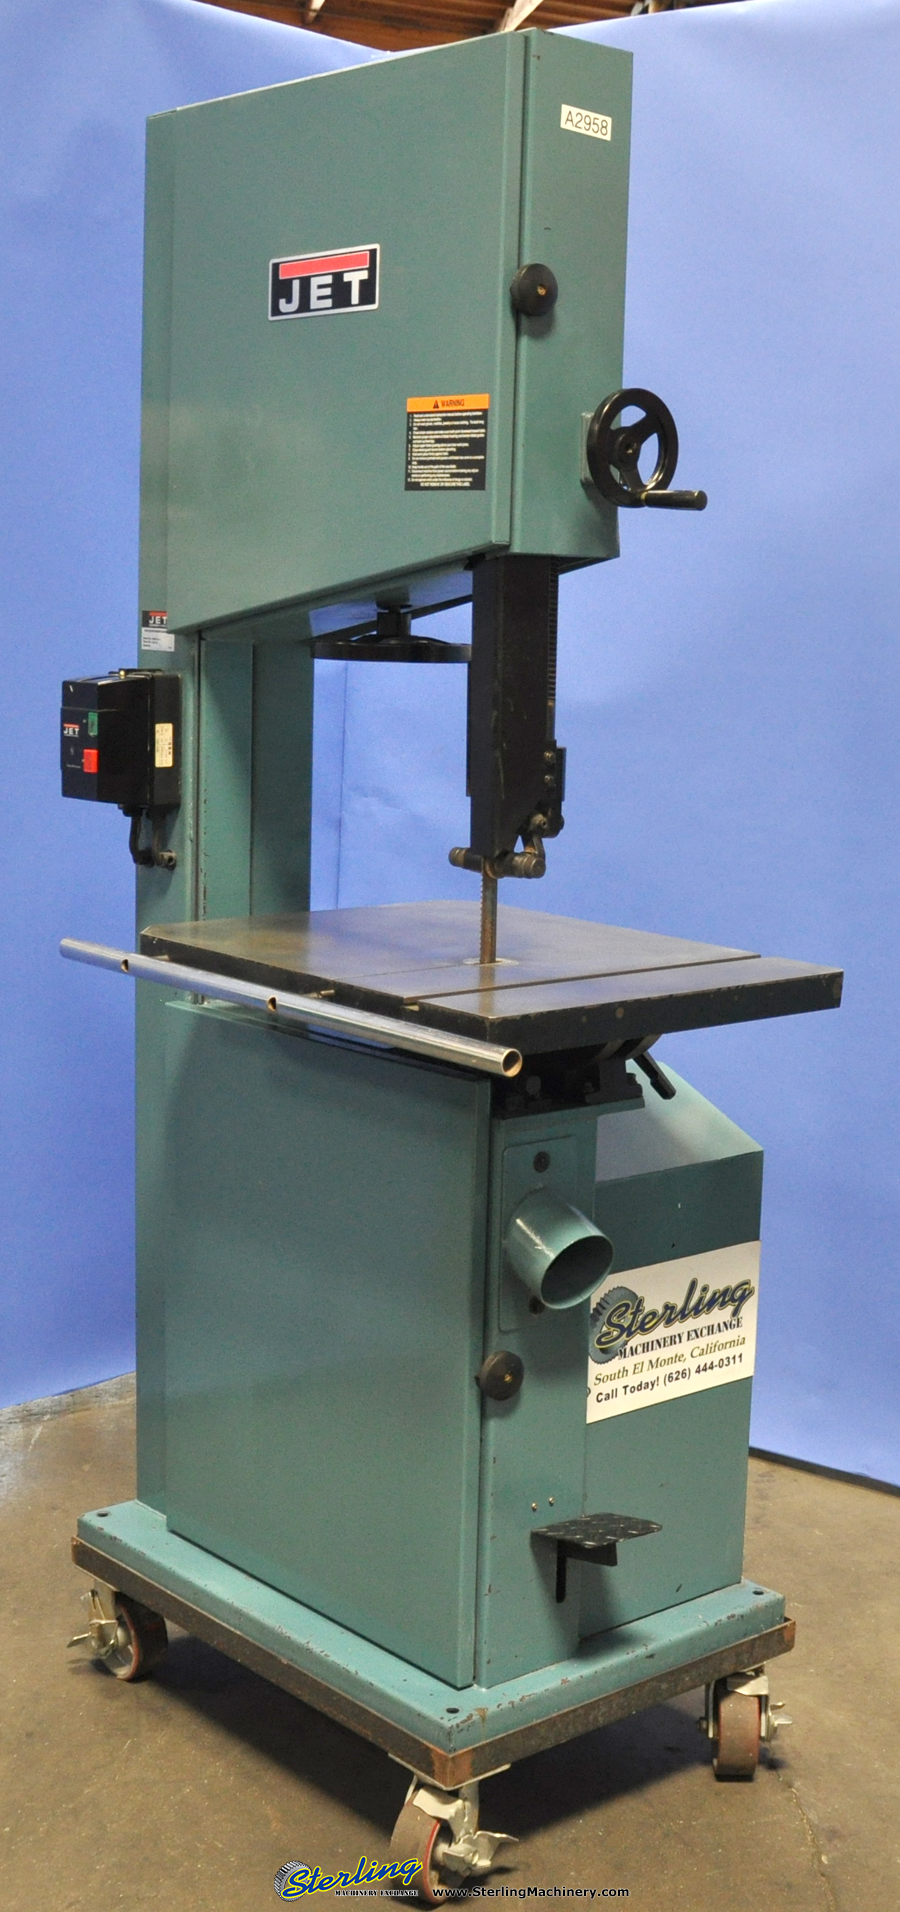 Used Jet Vertical Bandsaw (Woodworking) - Sterling ...